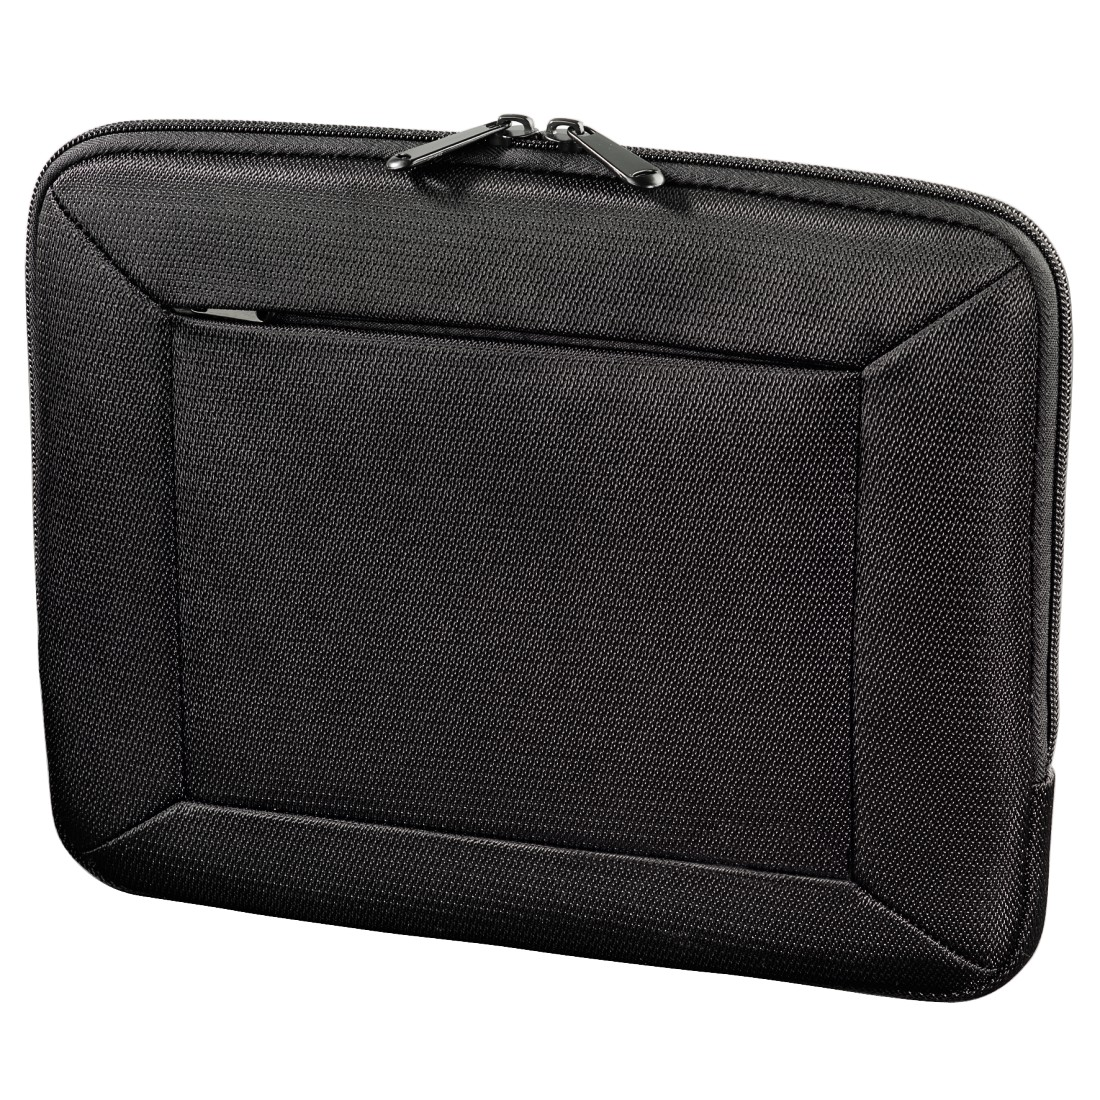 abx High-Res Image - Hama, Softboard Sleeve for Apple iPad/2/3rd/4th Generation, black